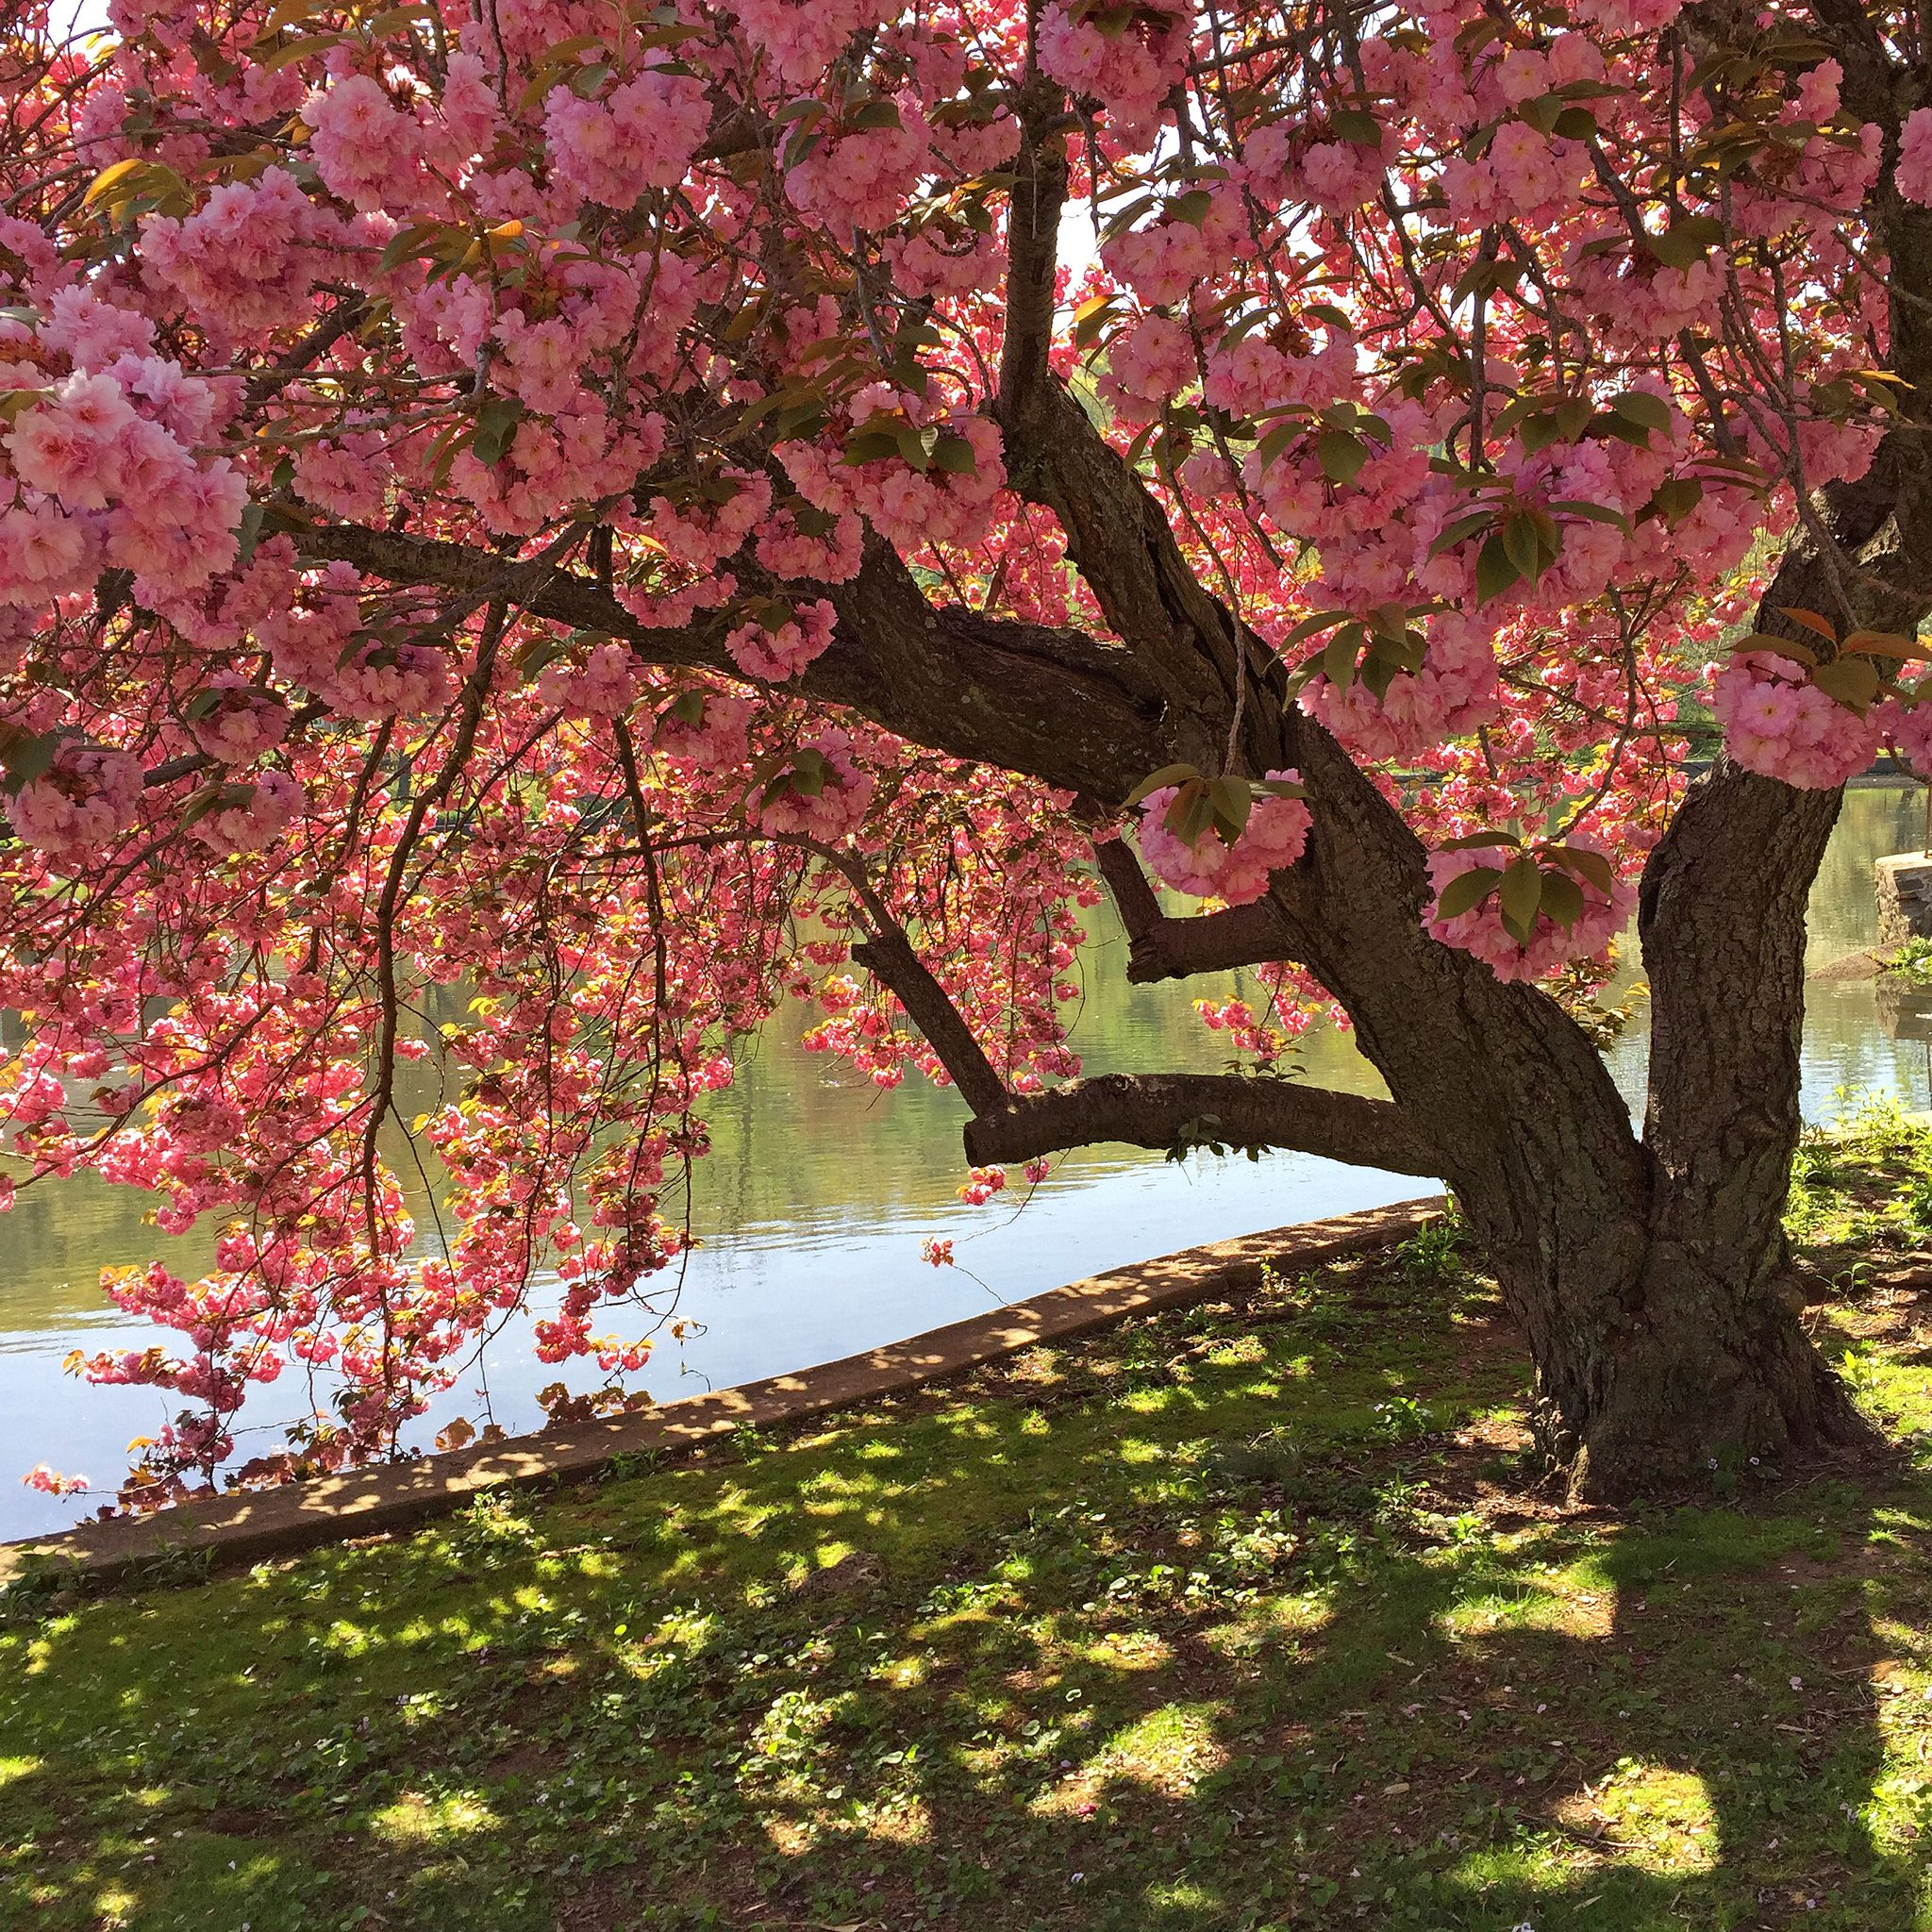 Cherry Blossom Tree In Bloom At Roslyn Duck Pond Roslyn New York Cherry Blossom Tree Tree Roslyn